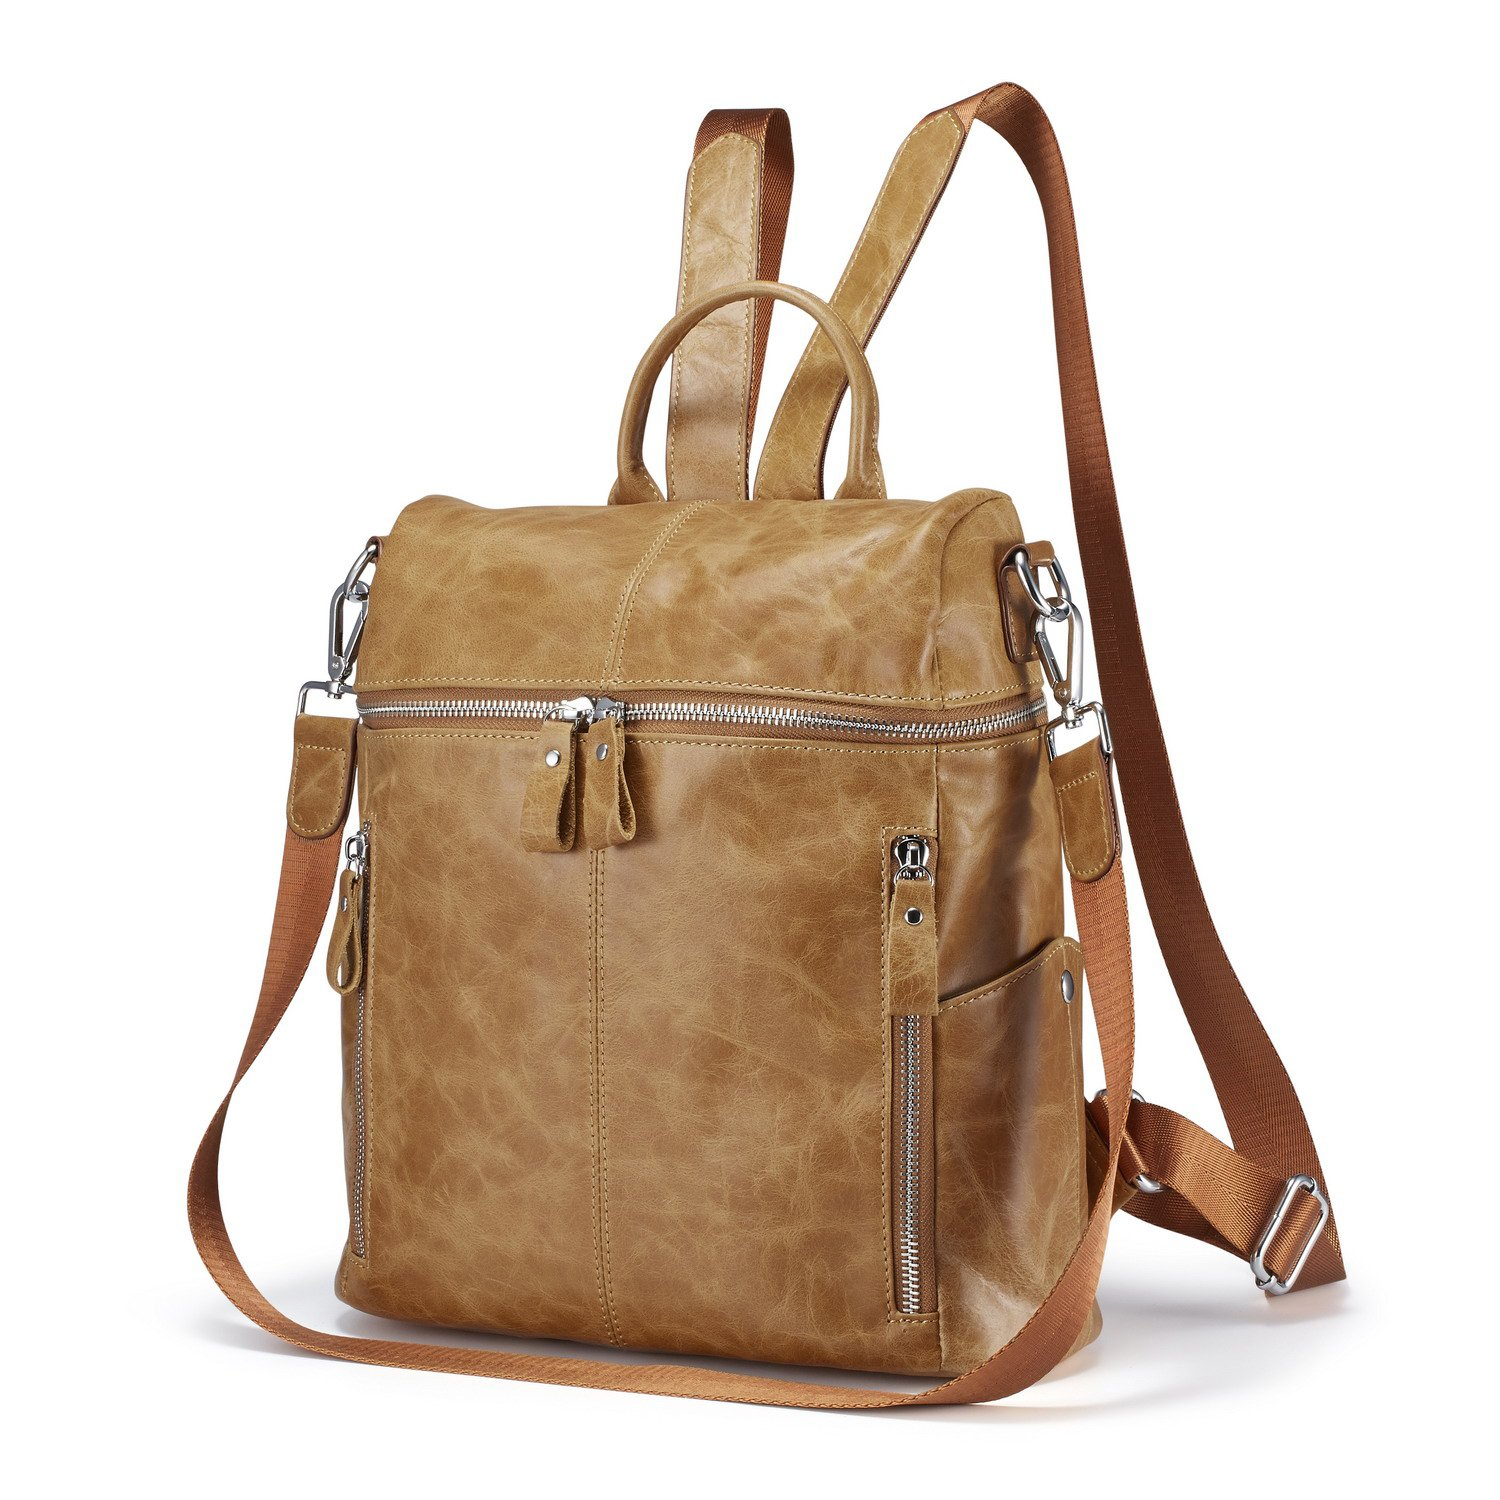 Lecxci Women Large Multi-pocket Lightweight Genuine Leather Backpack Shoulder Bag Ladies Fashion Schoolbag Travel Bag Casual Daypack(Wax Leather,Brown) by Lecxci (Image #1)